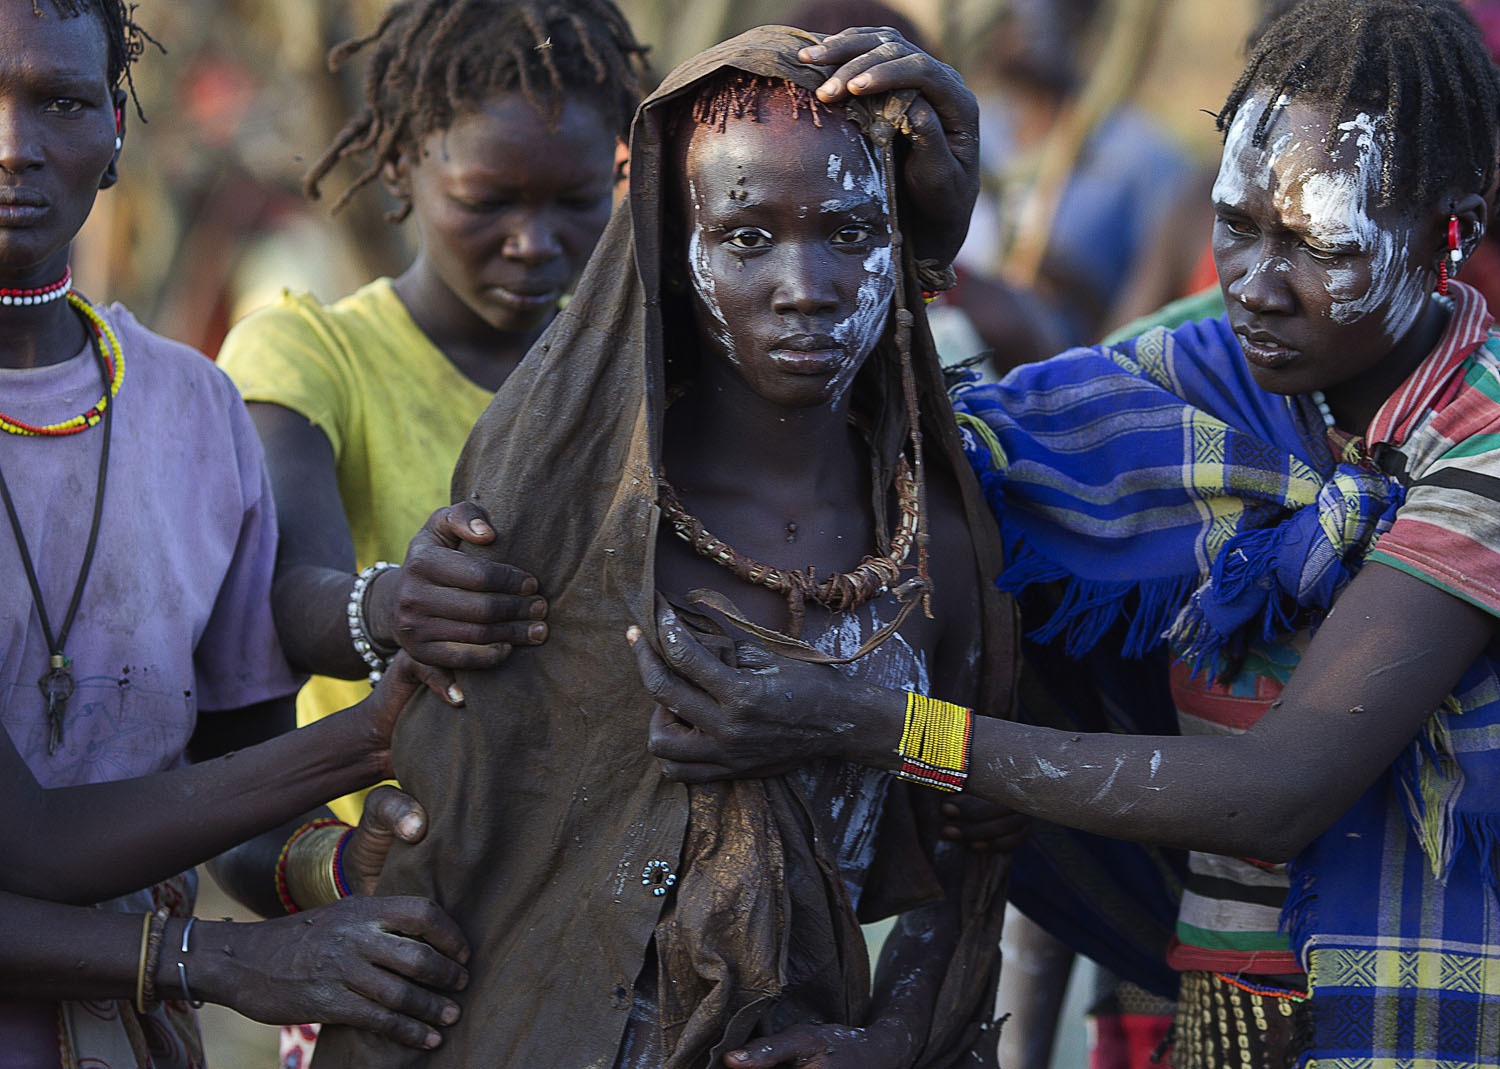 The Daily Beast: Female Circumcision Ceremony in KenyaA Pokot girl, covered in animal skins, walks to a place where she will rest after being circumcised in a tribal ritual in a village about 80 kilometres from the town of Marigat in Baringo County, Kenya, Oct 16, 2014.